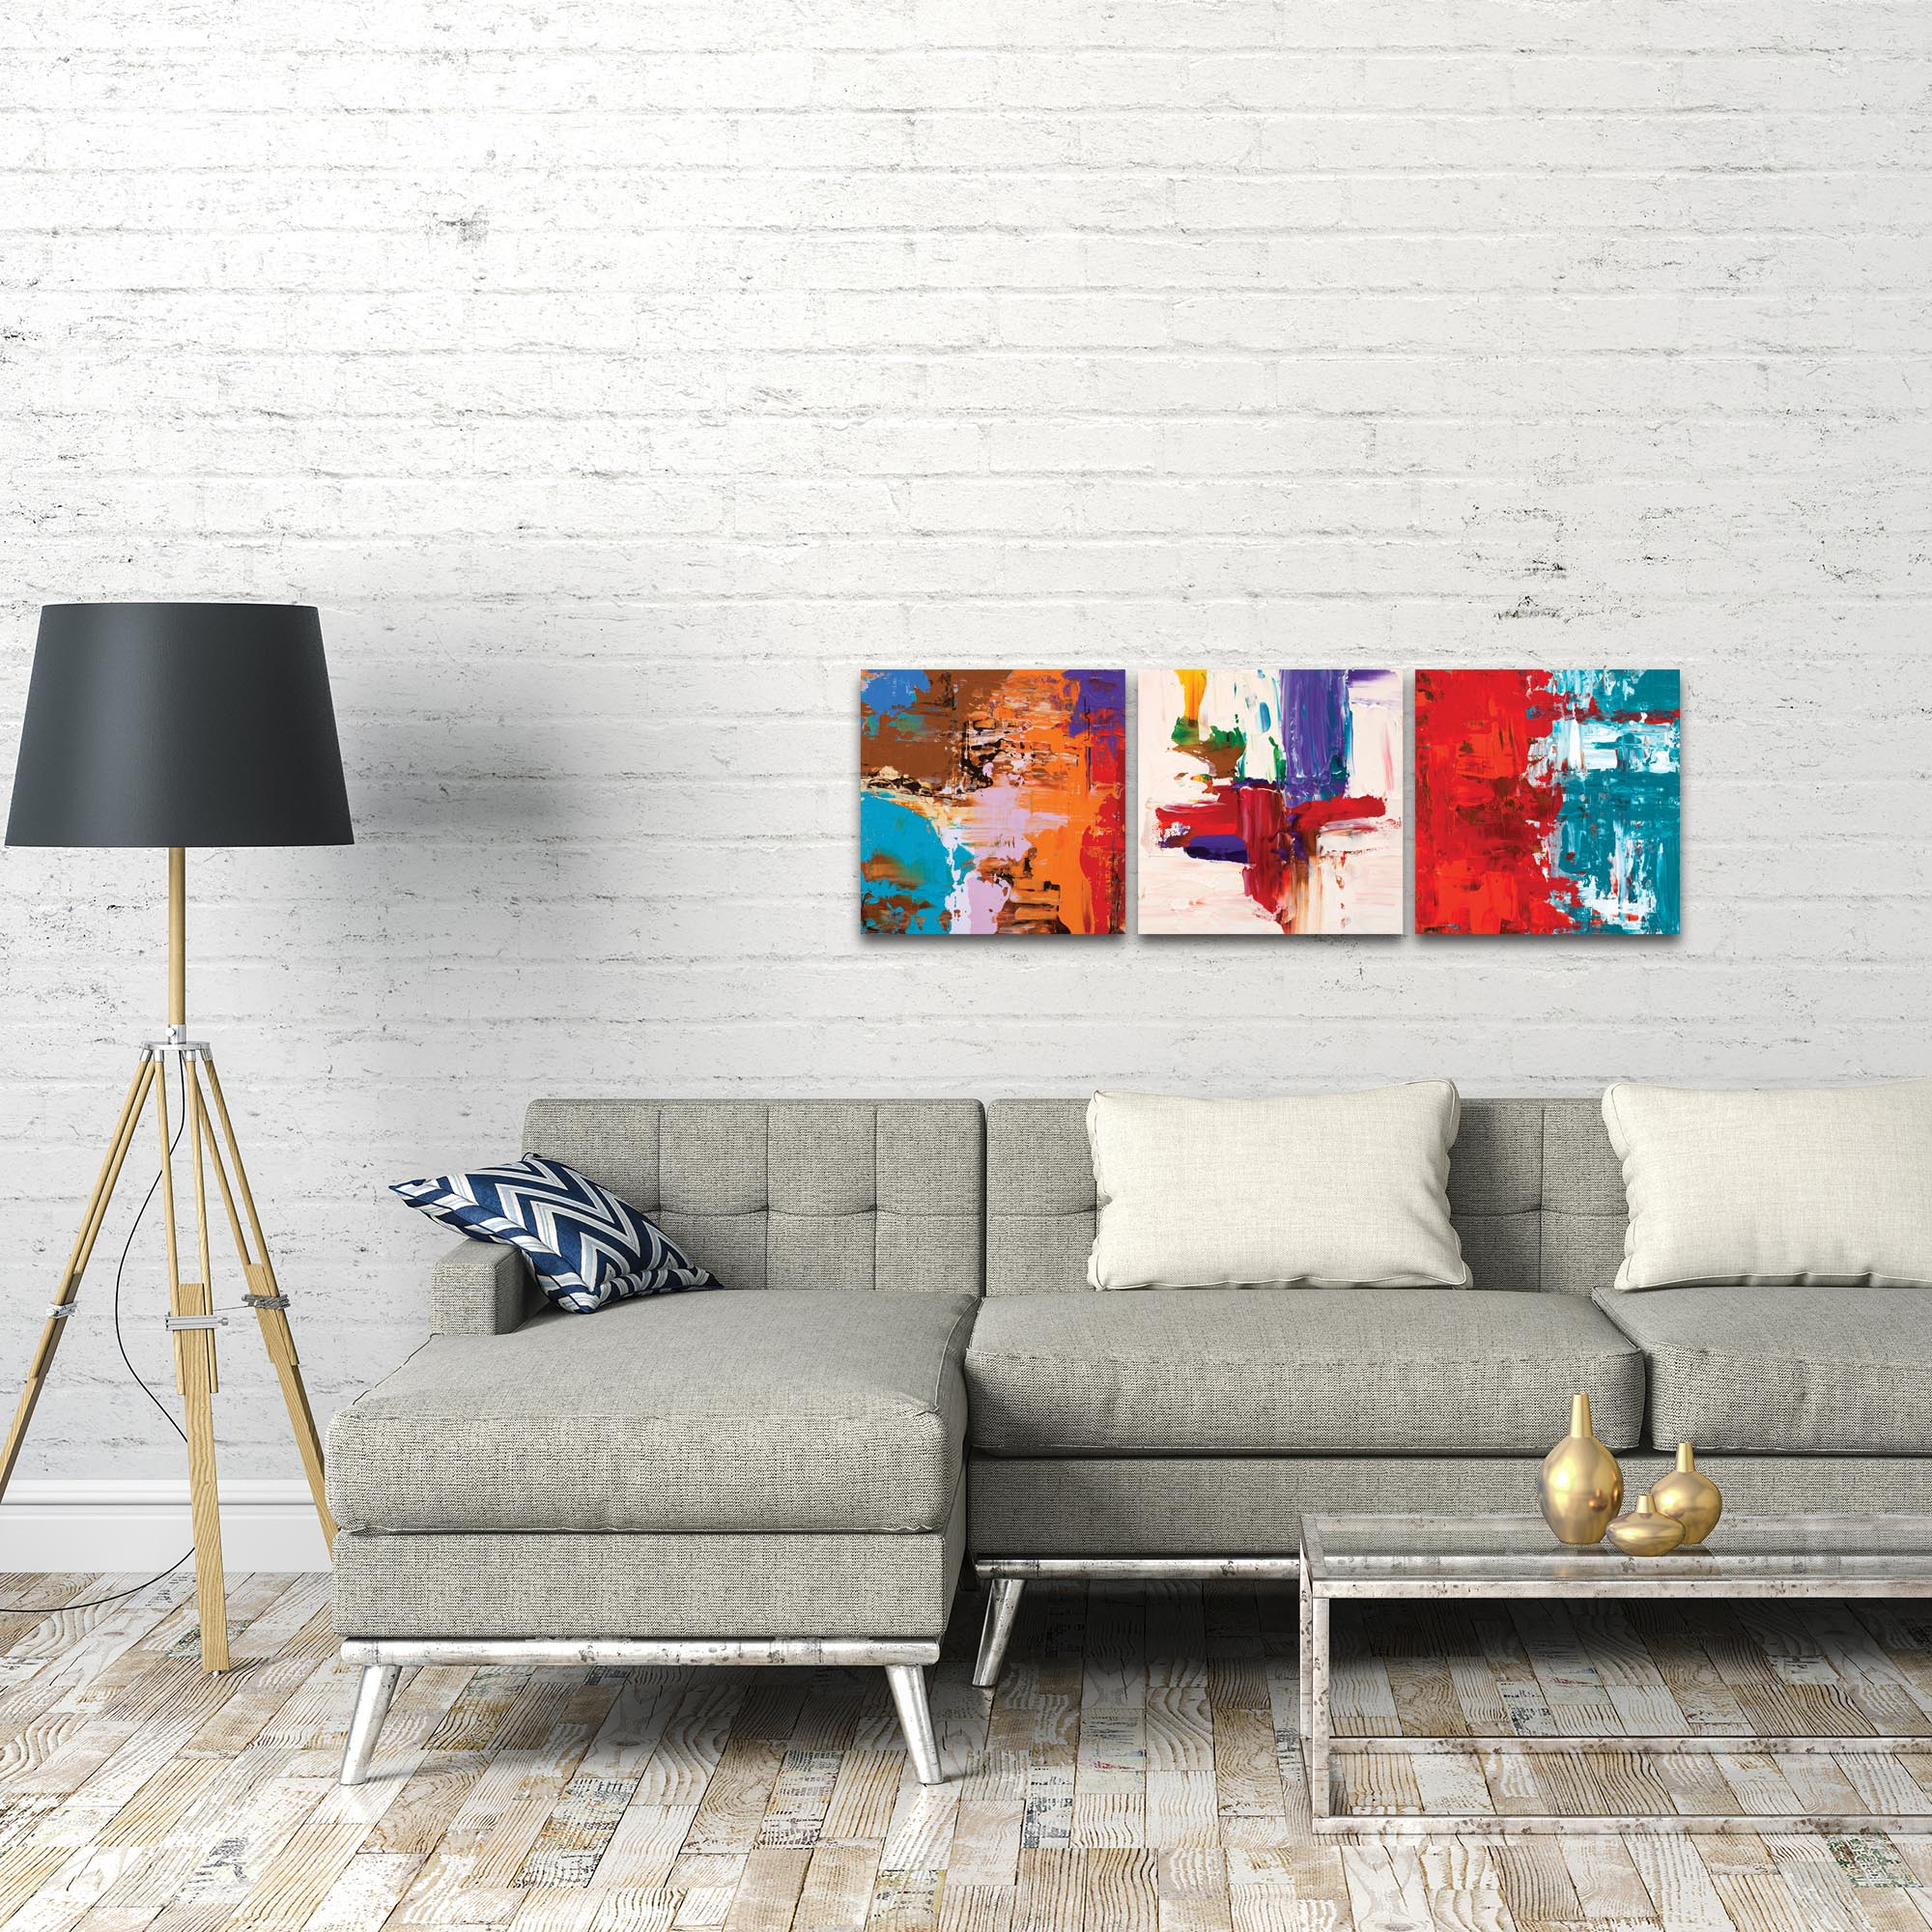 Abstract Wall Art 'Urban Triptych 5' - Urban Decor on Metal or Plexiglass - Lifestyle View